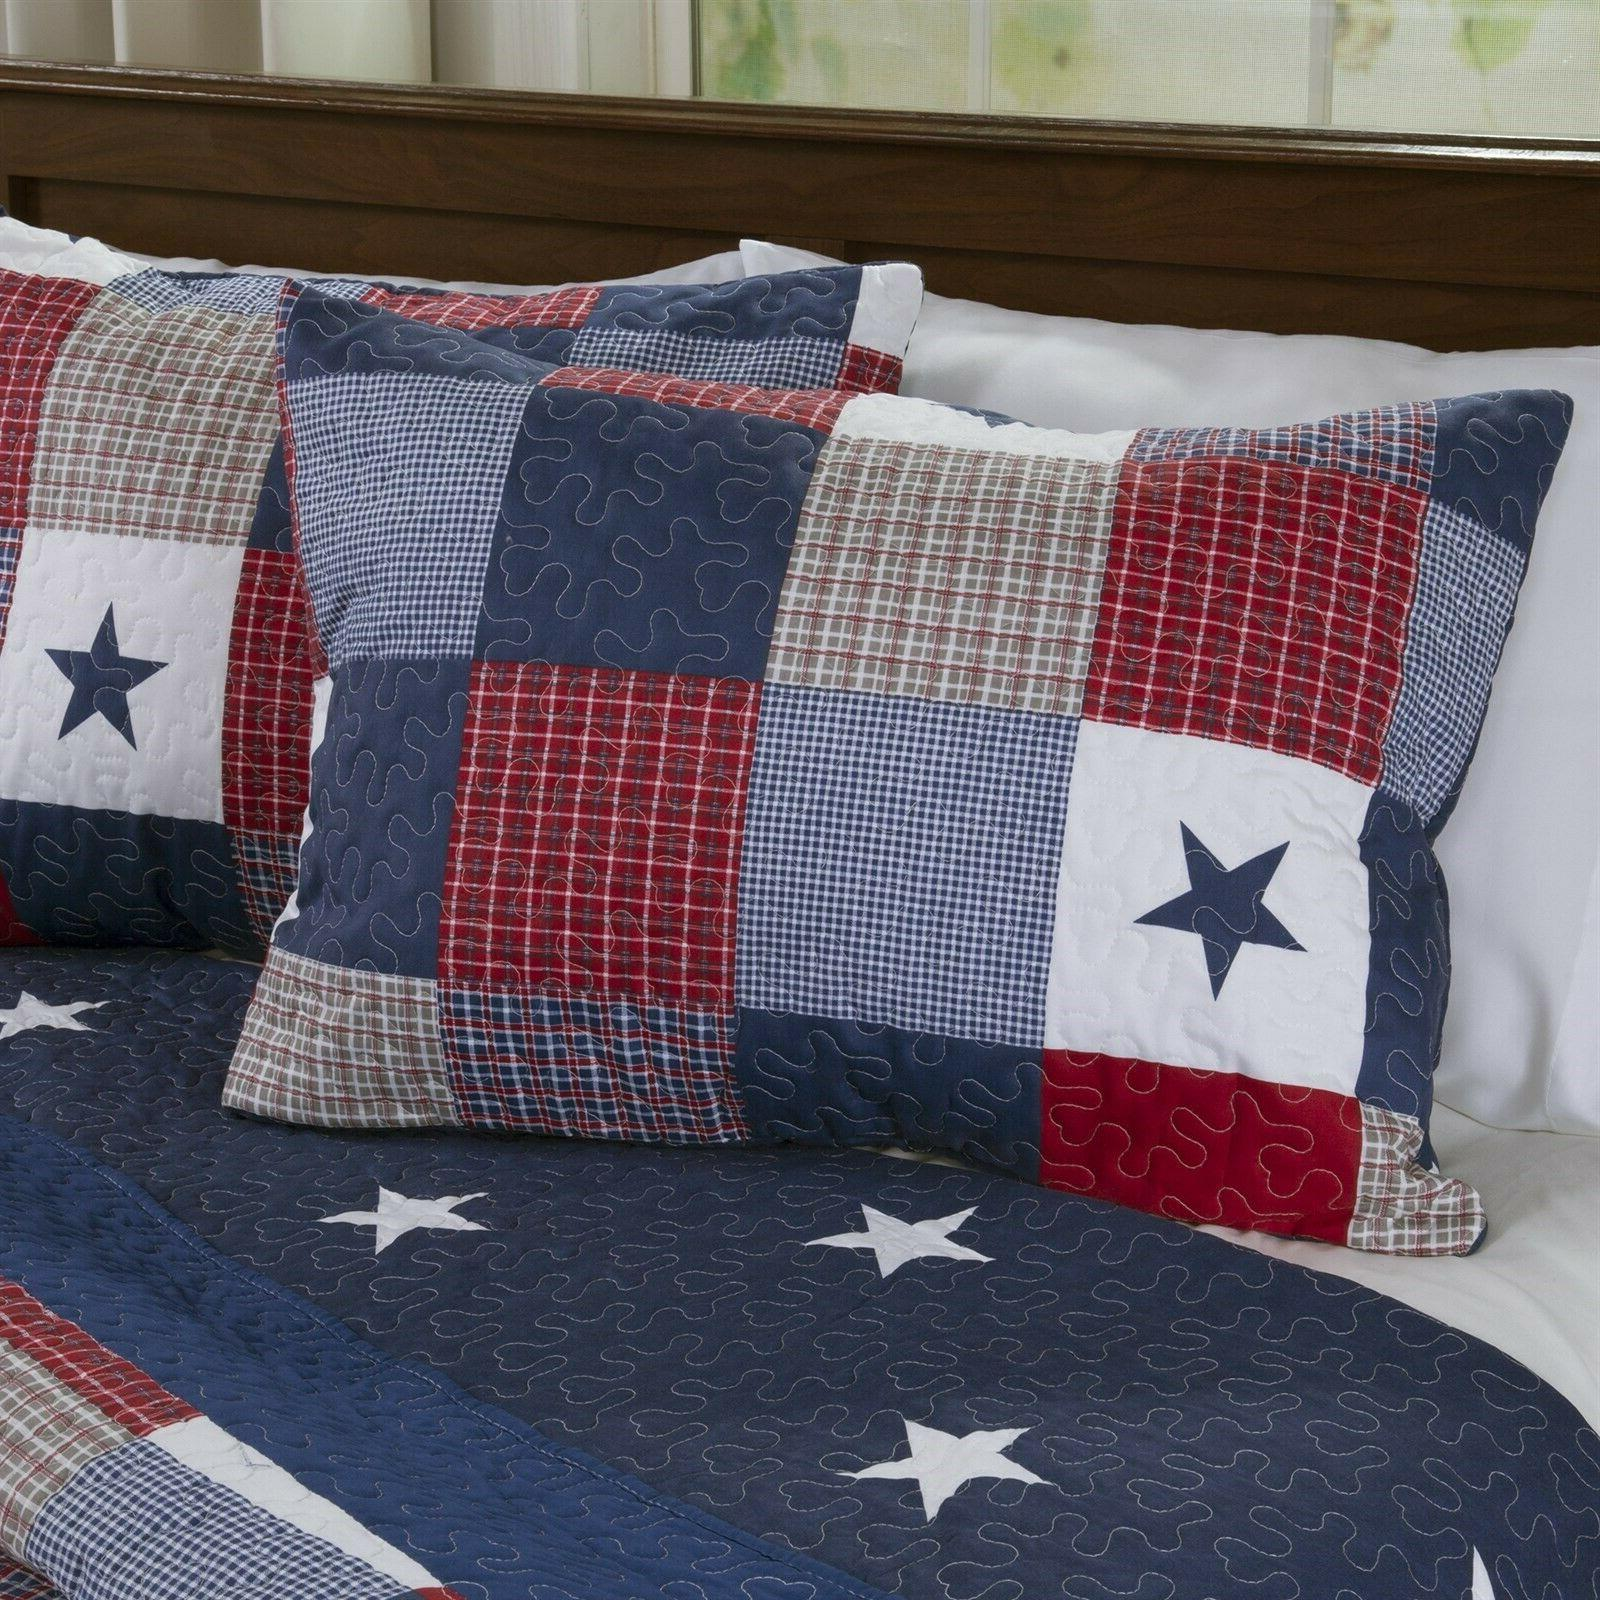 All Blanket Red White Blue Twin